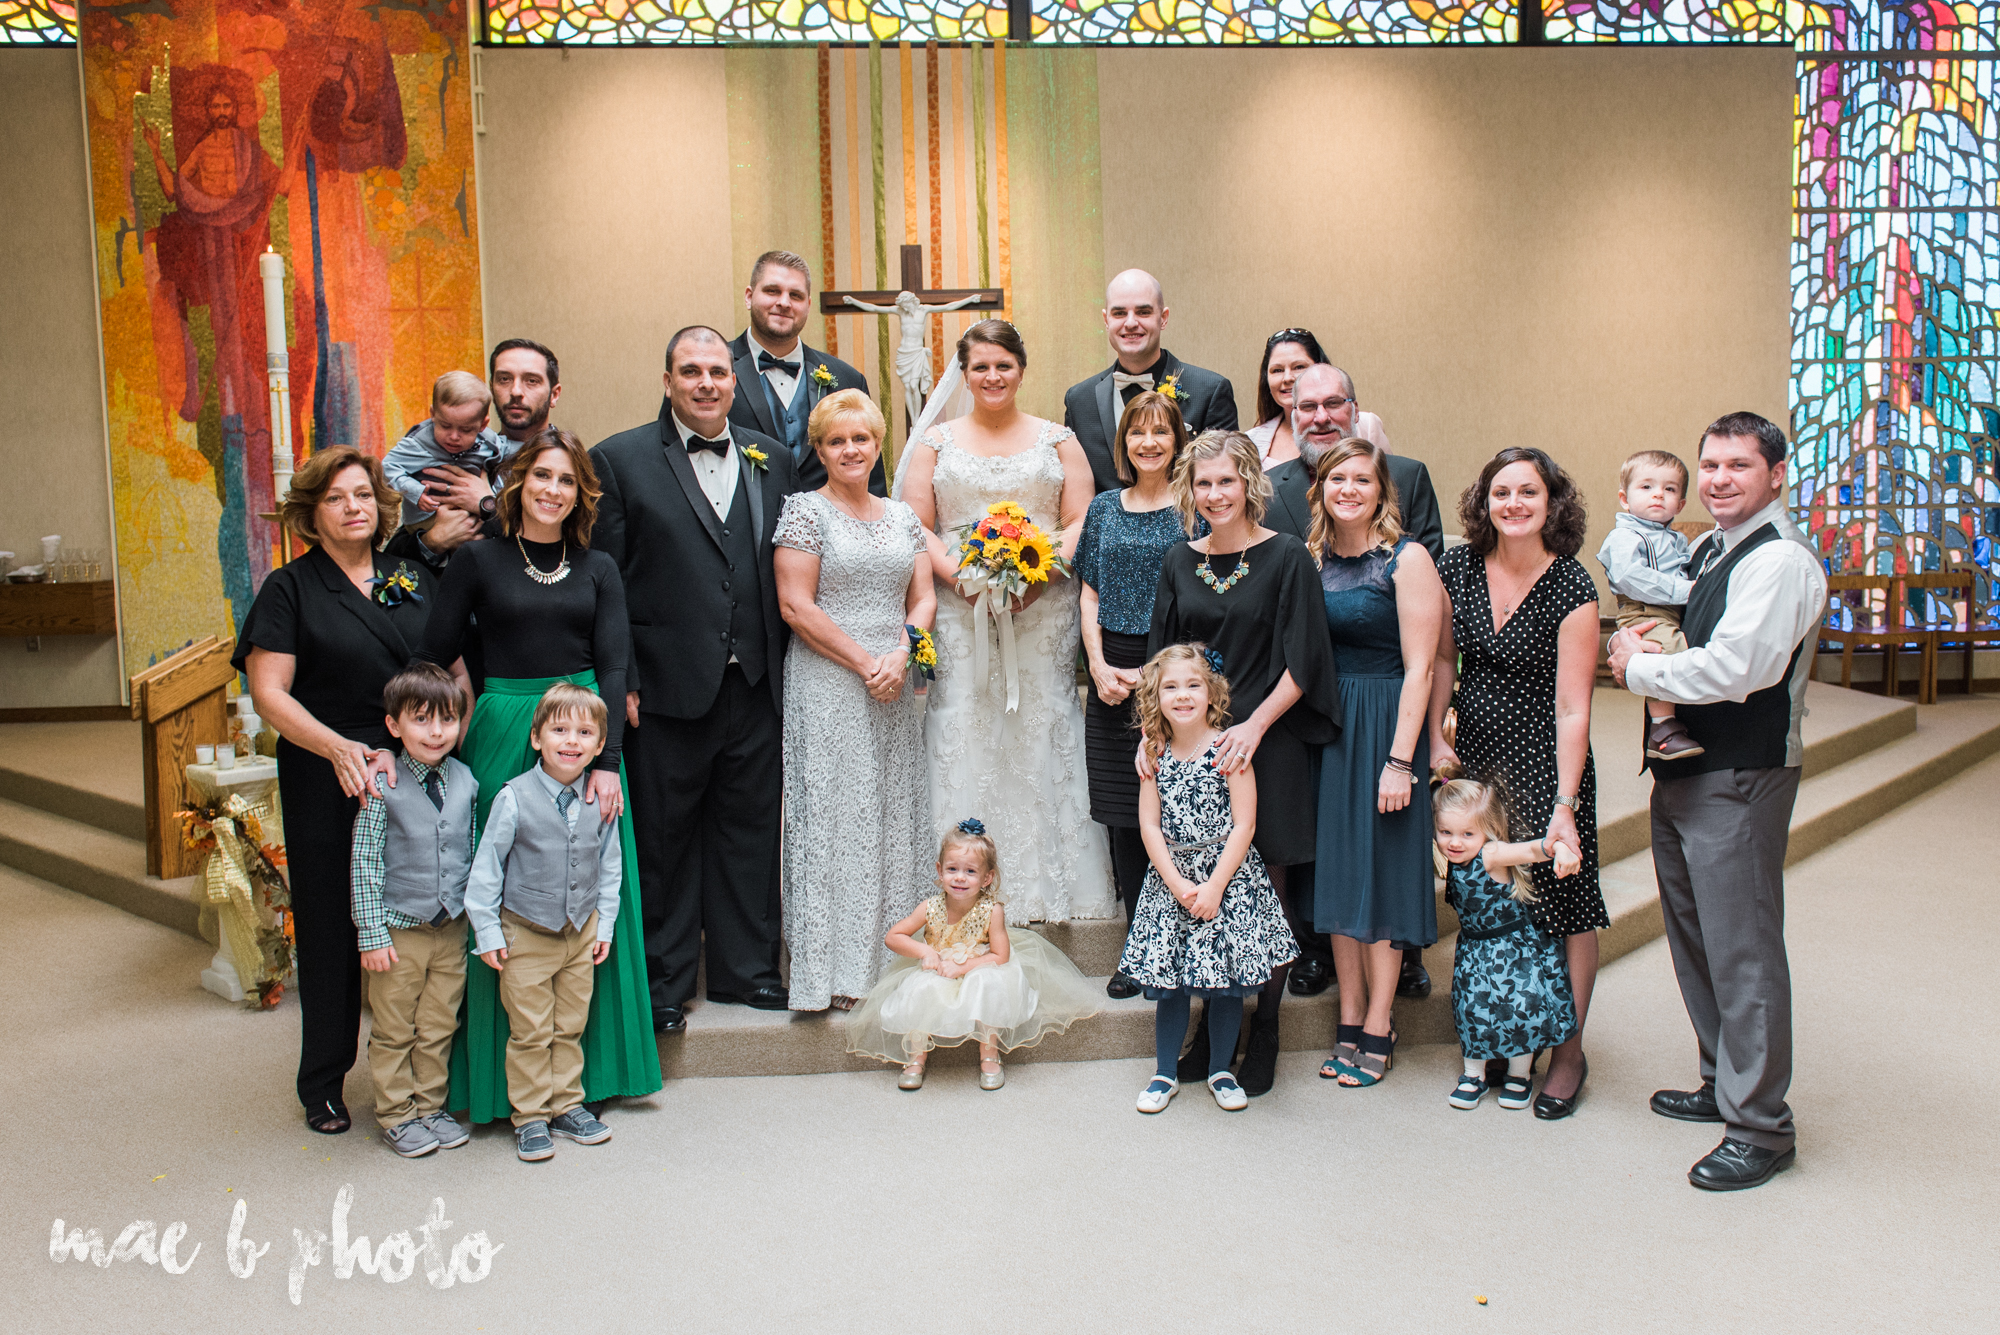 kaylynn & matt's fall zoo wedding at the cleveland metroparks zoo in cleveland ohio photographed by mae b photo-14.jpg